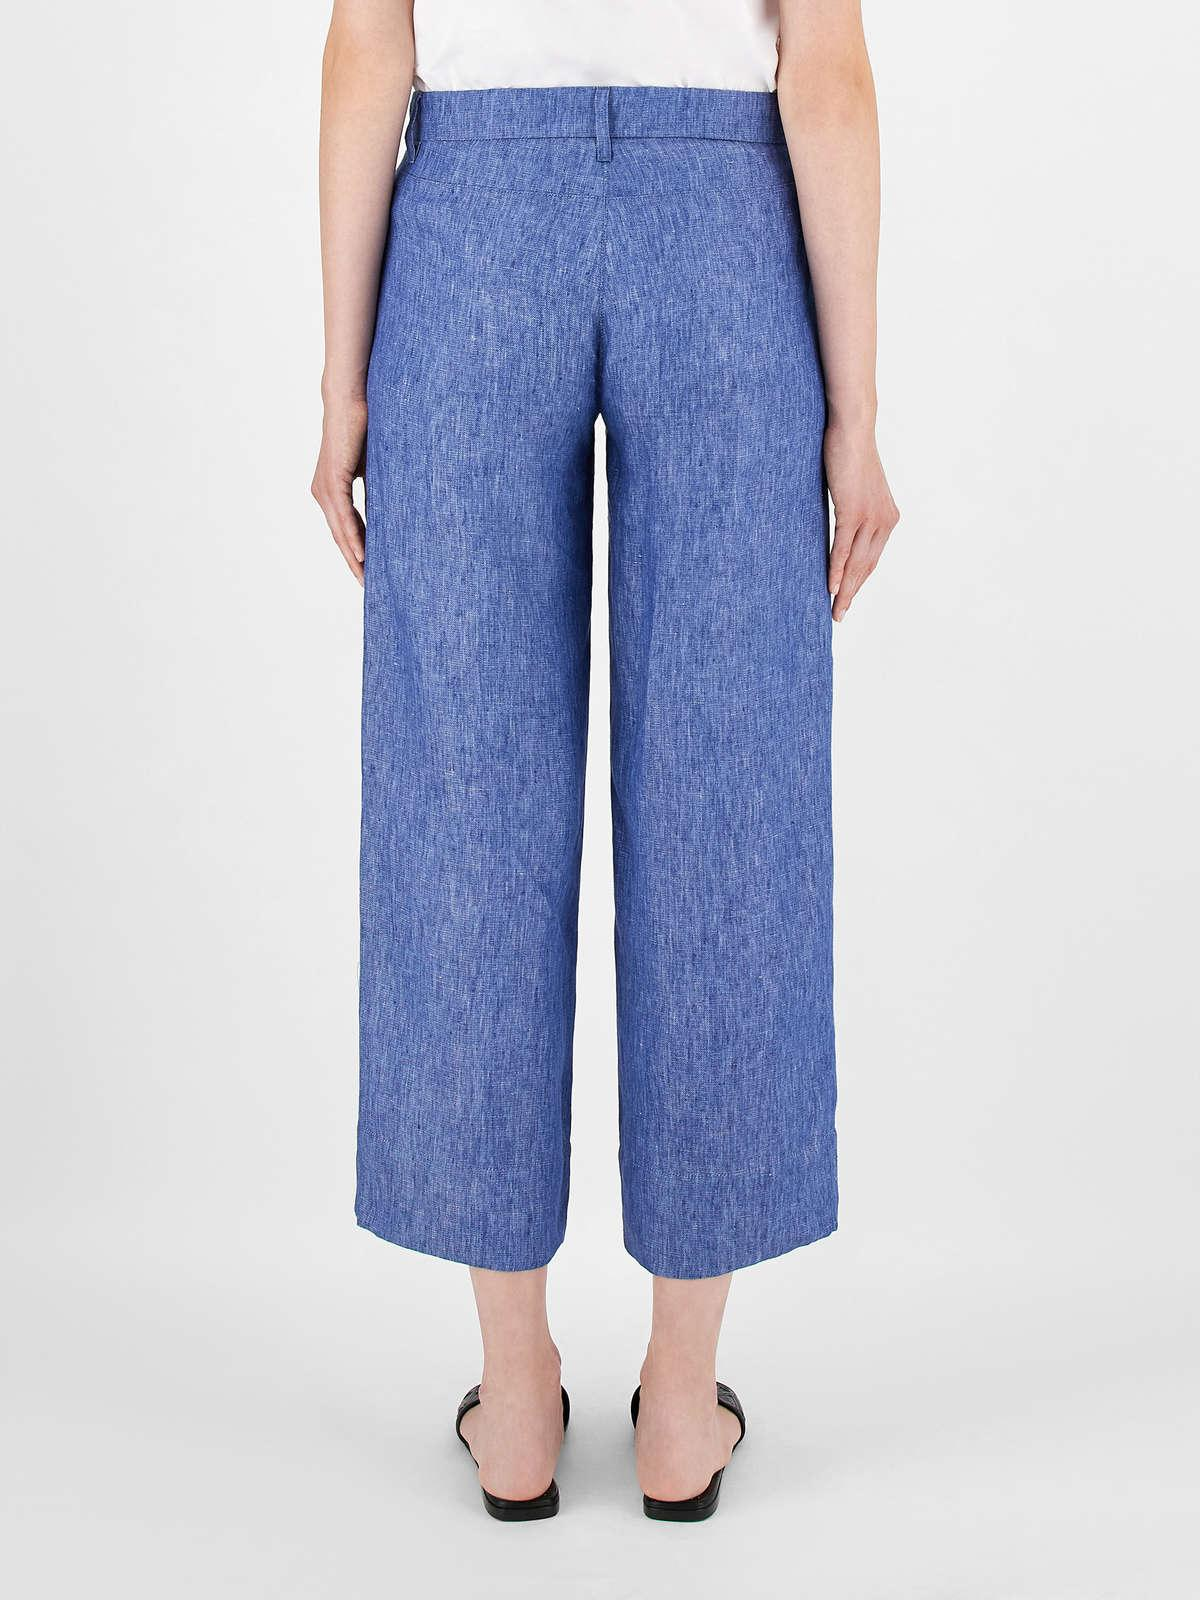 Womens Max Mara Trousers And Jeans   Faded-Look Linen Trousers Cornflower Blue